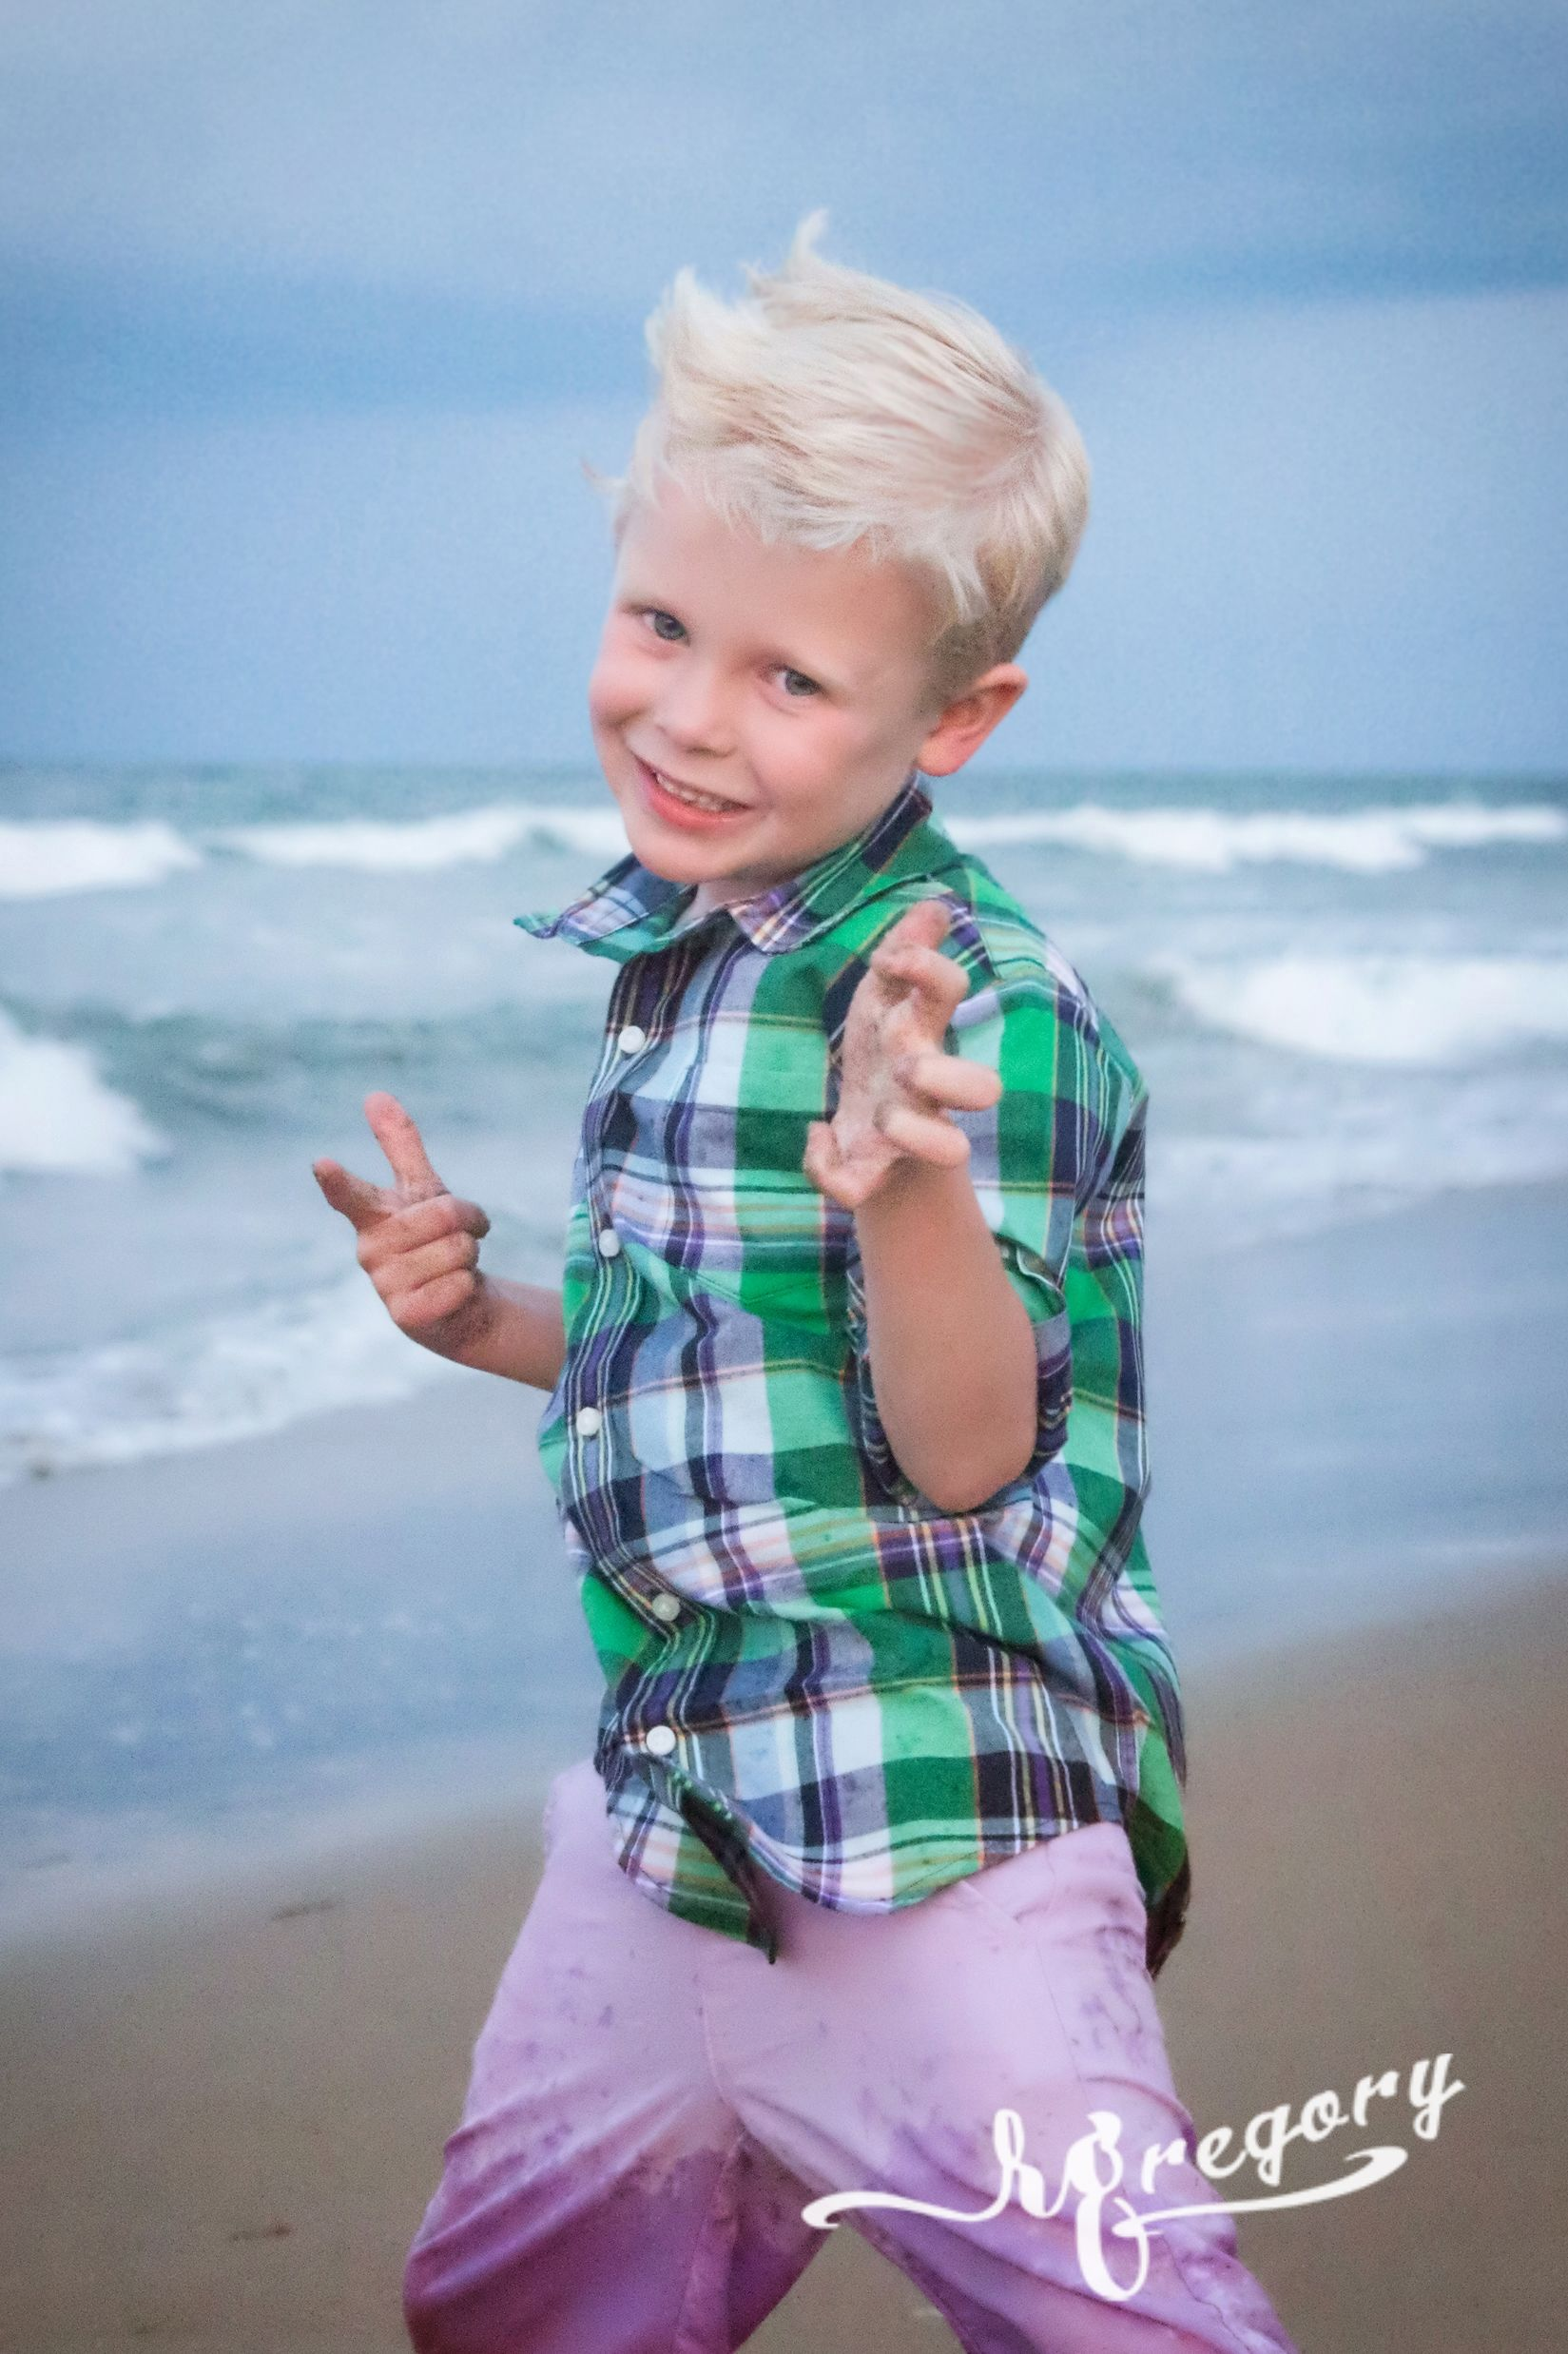 Webb virginia beach photographers candid child